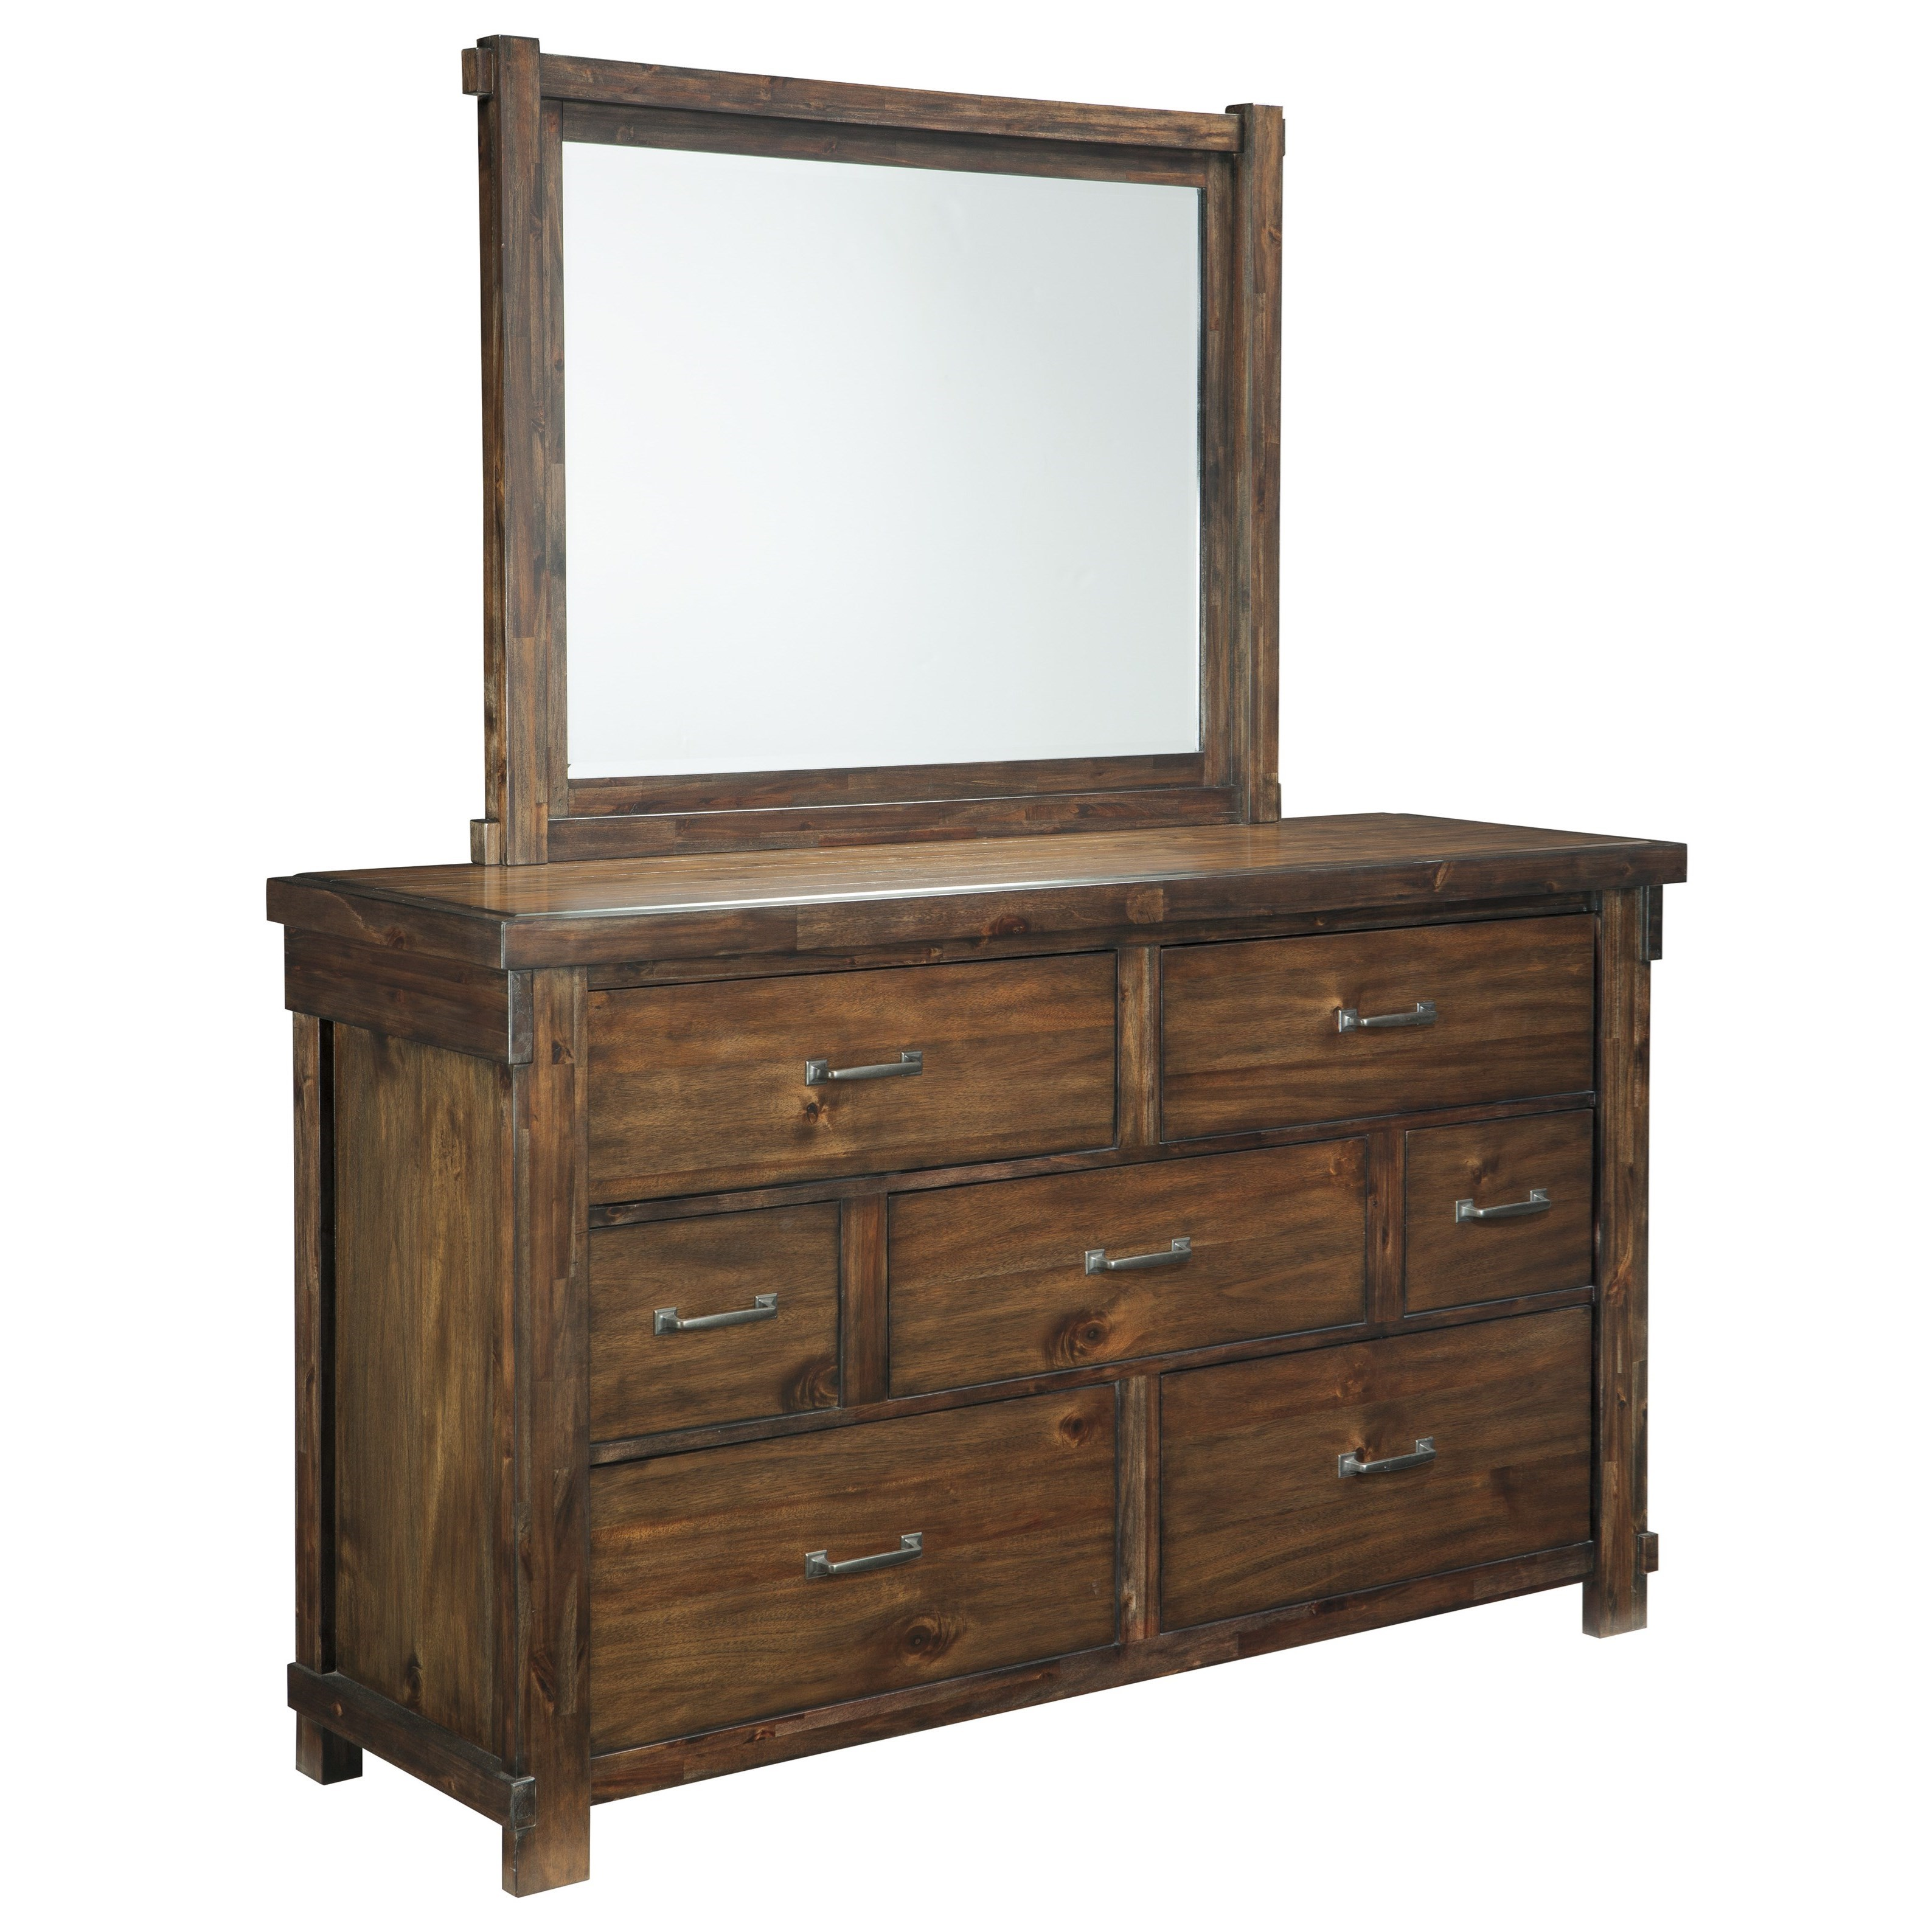 Lakeleigh Dresser & Bedroom Mirror by Signature Design by Ashley at Sparks HomeStore